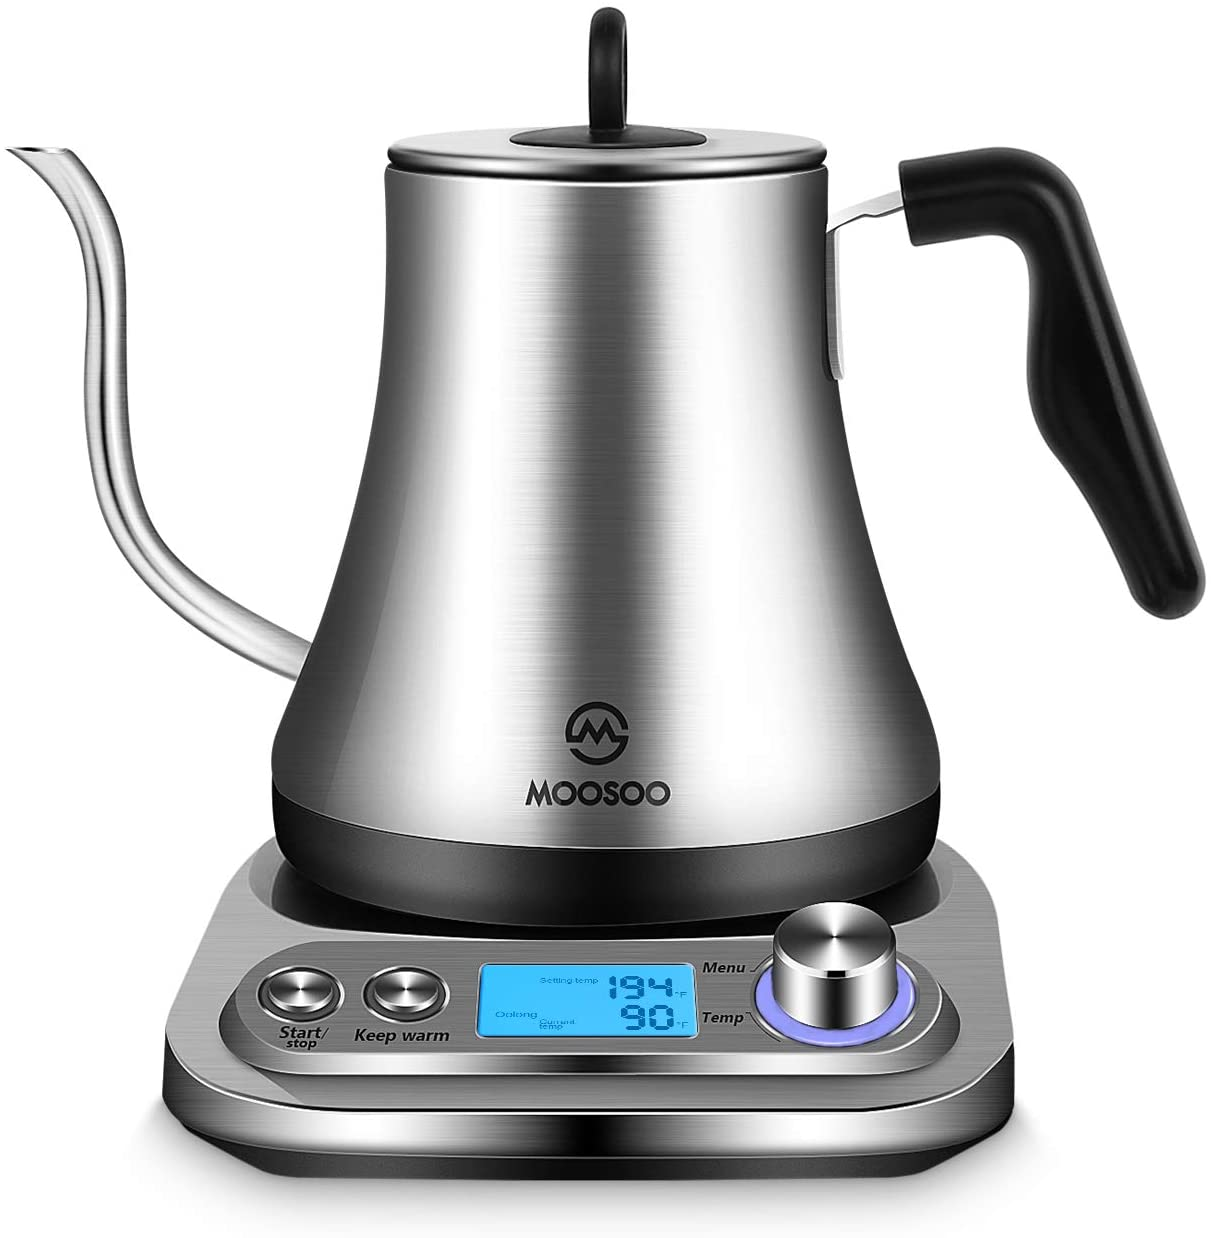 MOOSOO Electric Gooseneck Kettle with Temperature Control - MK10